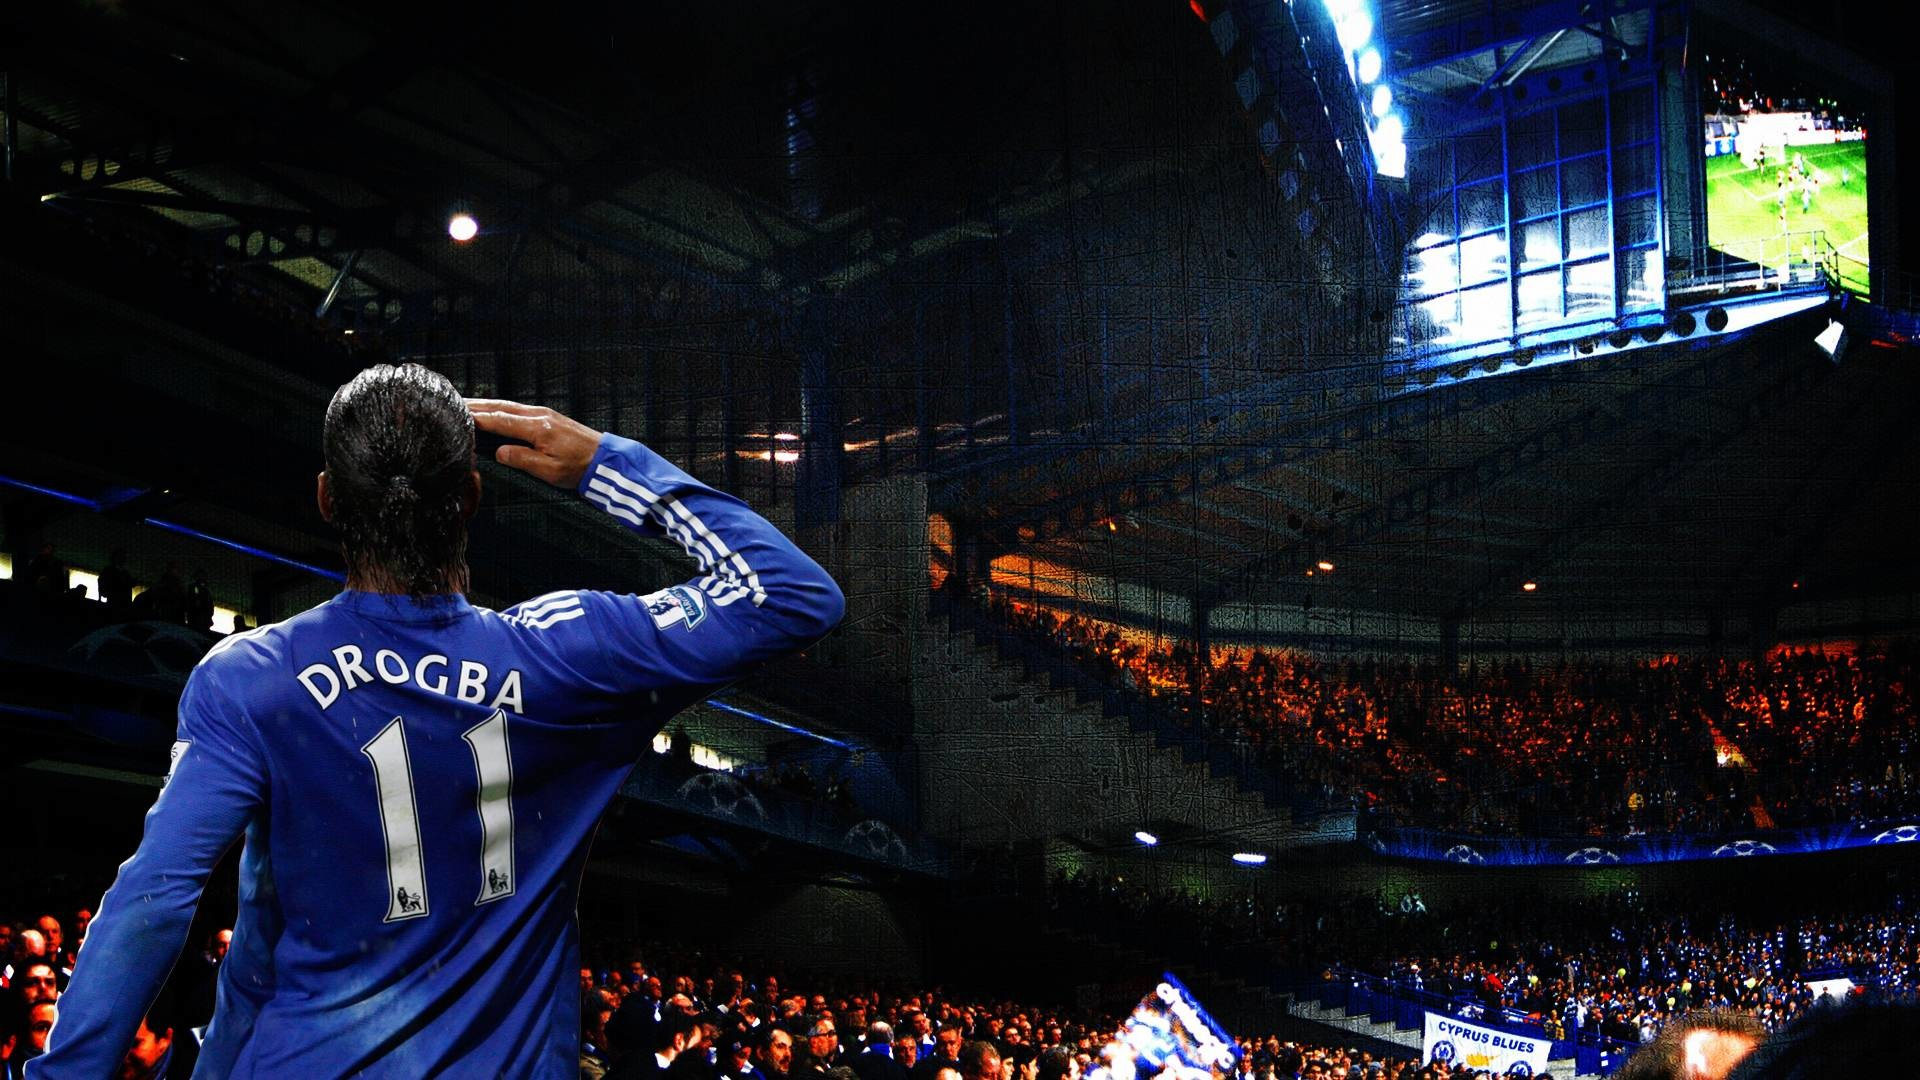 1920x1080 Chelsea FC HD Images 6 whb #ChelseaFCHDImages #ChelseaFC #Chelsea #football #